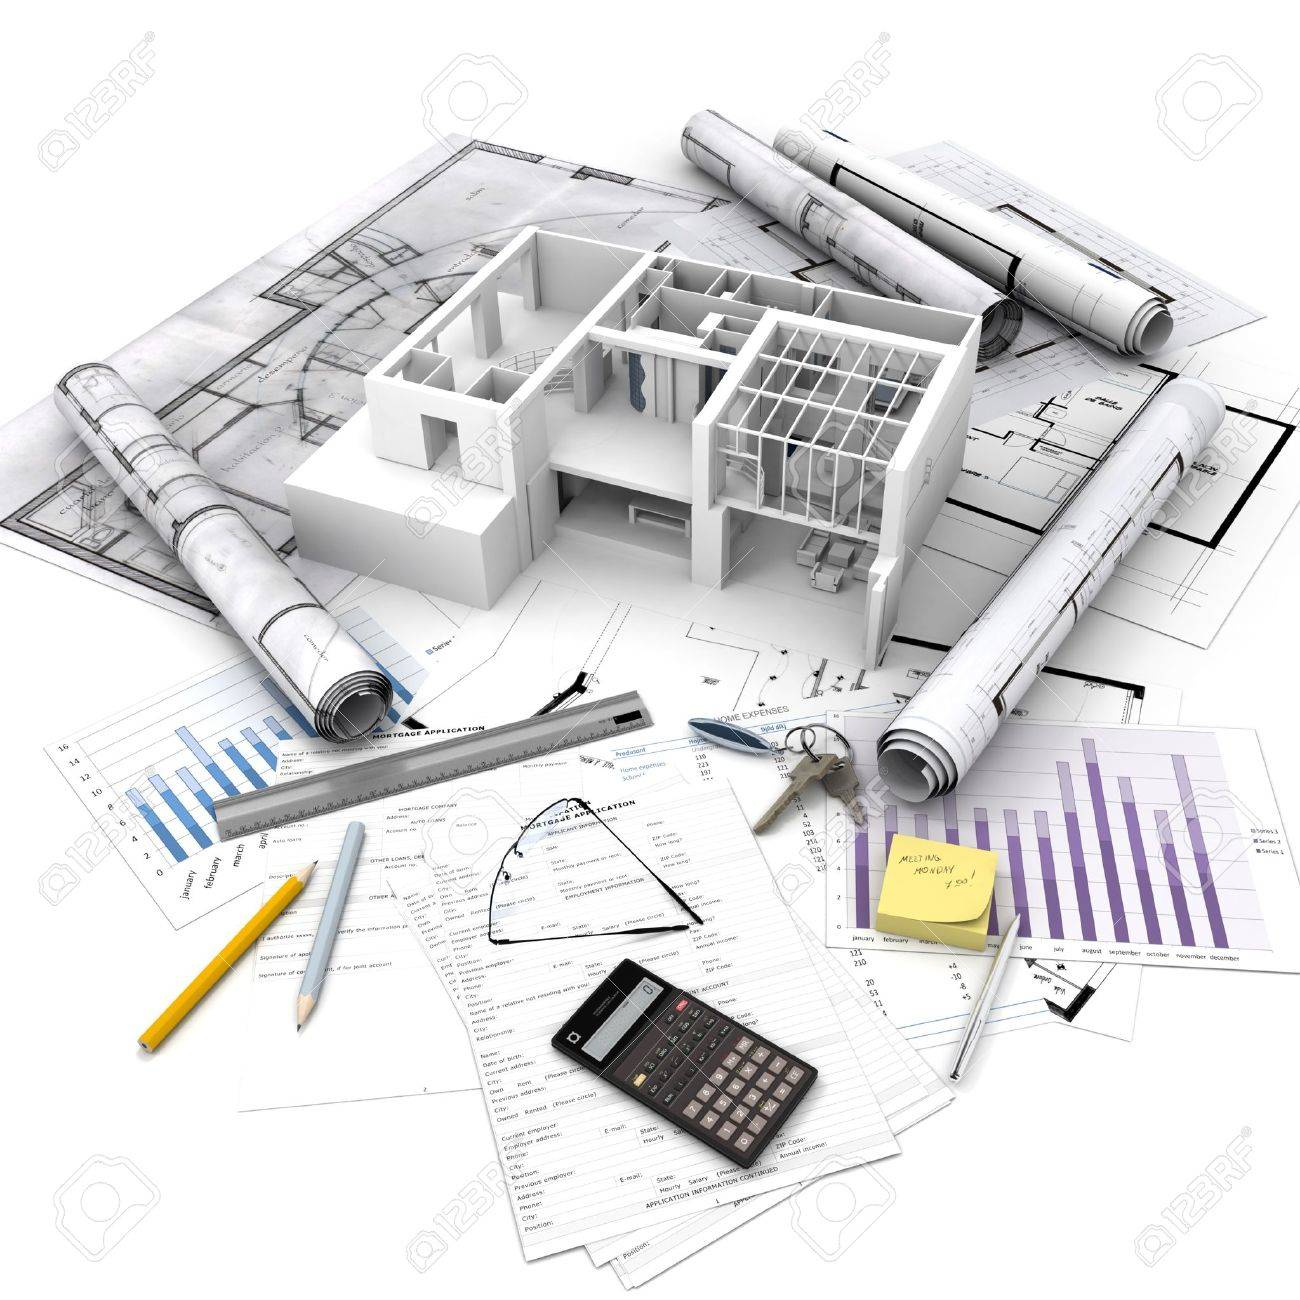 office building blueprints. Office Building With Open Interior On Top Of Blueprints, Documents And Mortgage Calculations Stock Photo Blueprints L